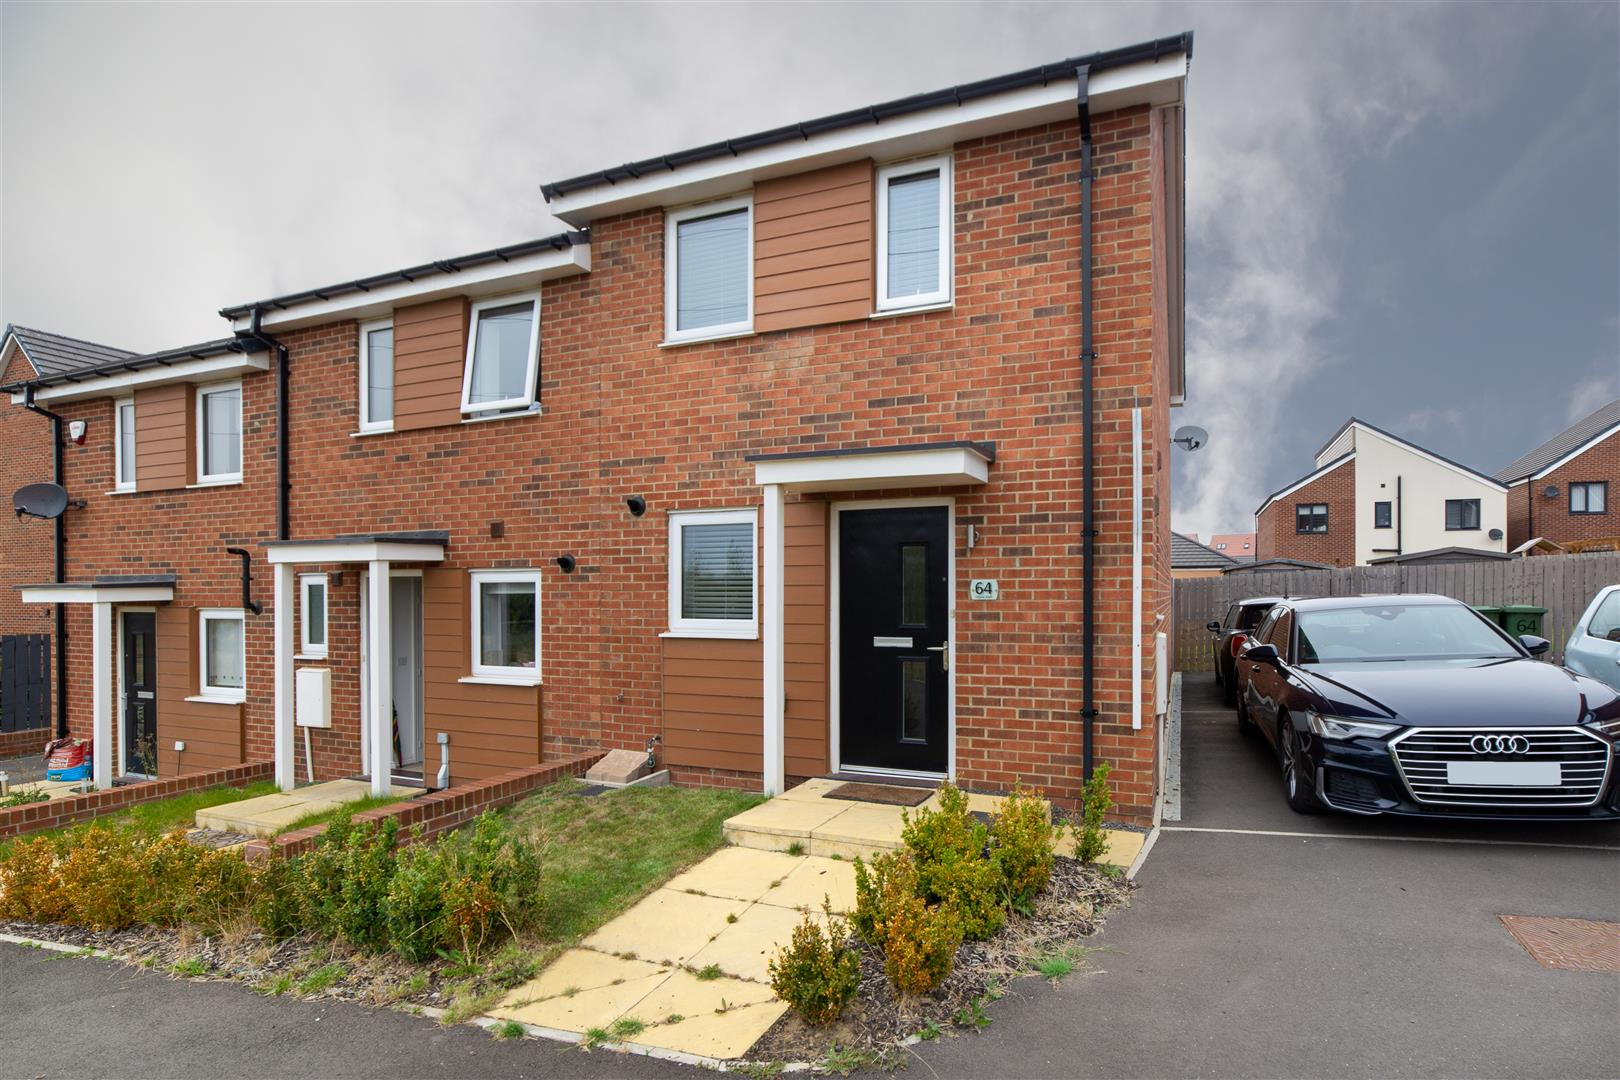 2 bed semi-detached house for sale in Newcastle Upon Tyne, NE13 9DW 0